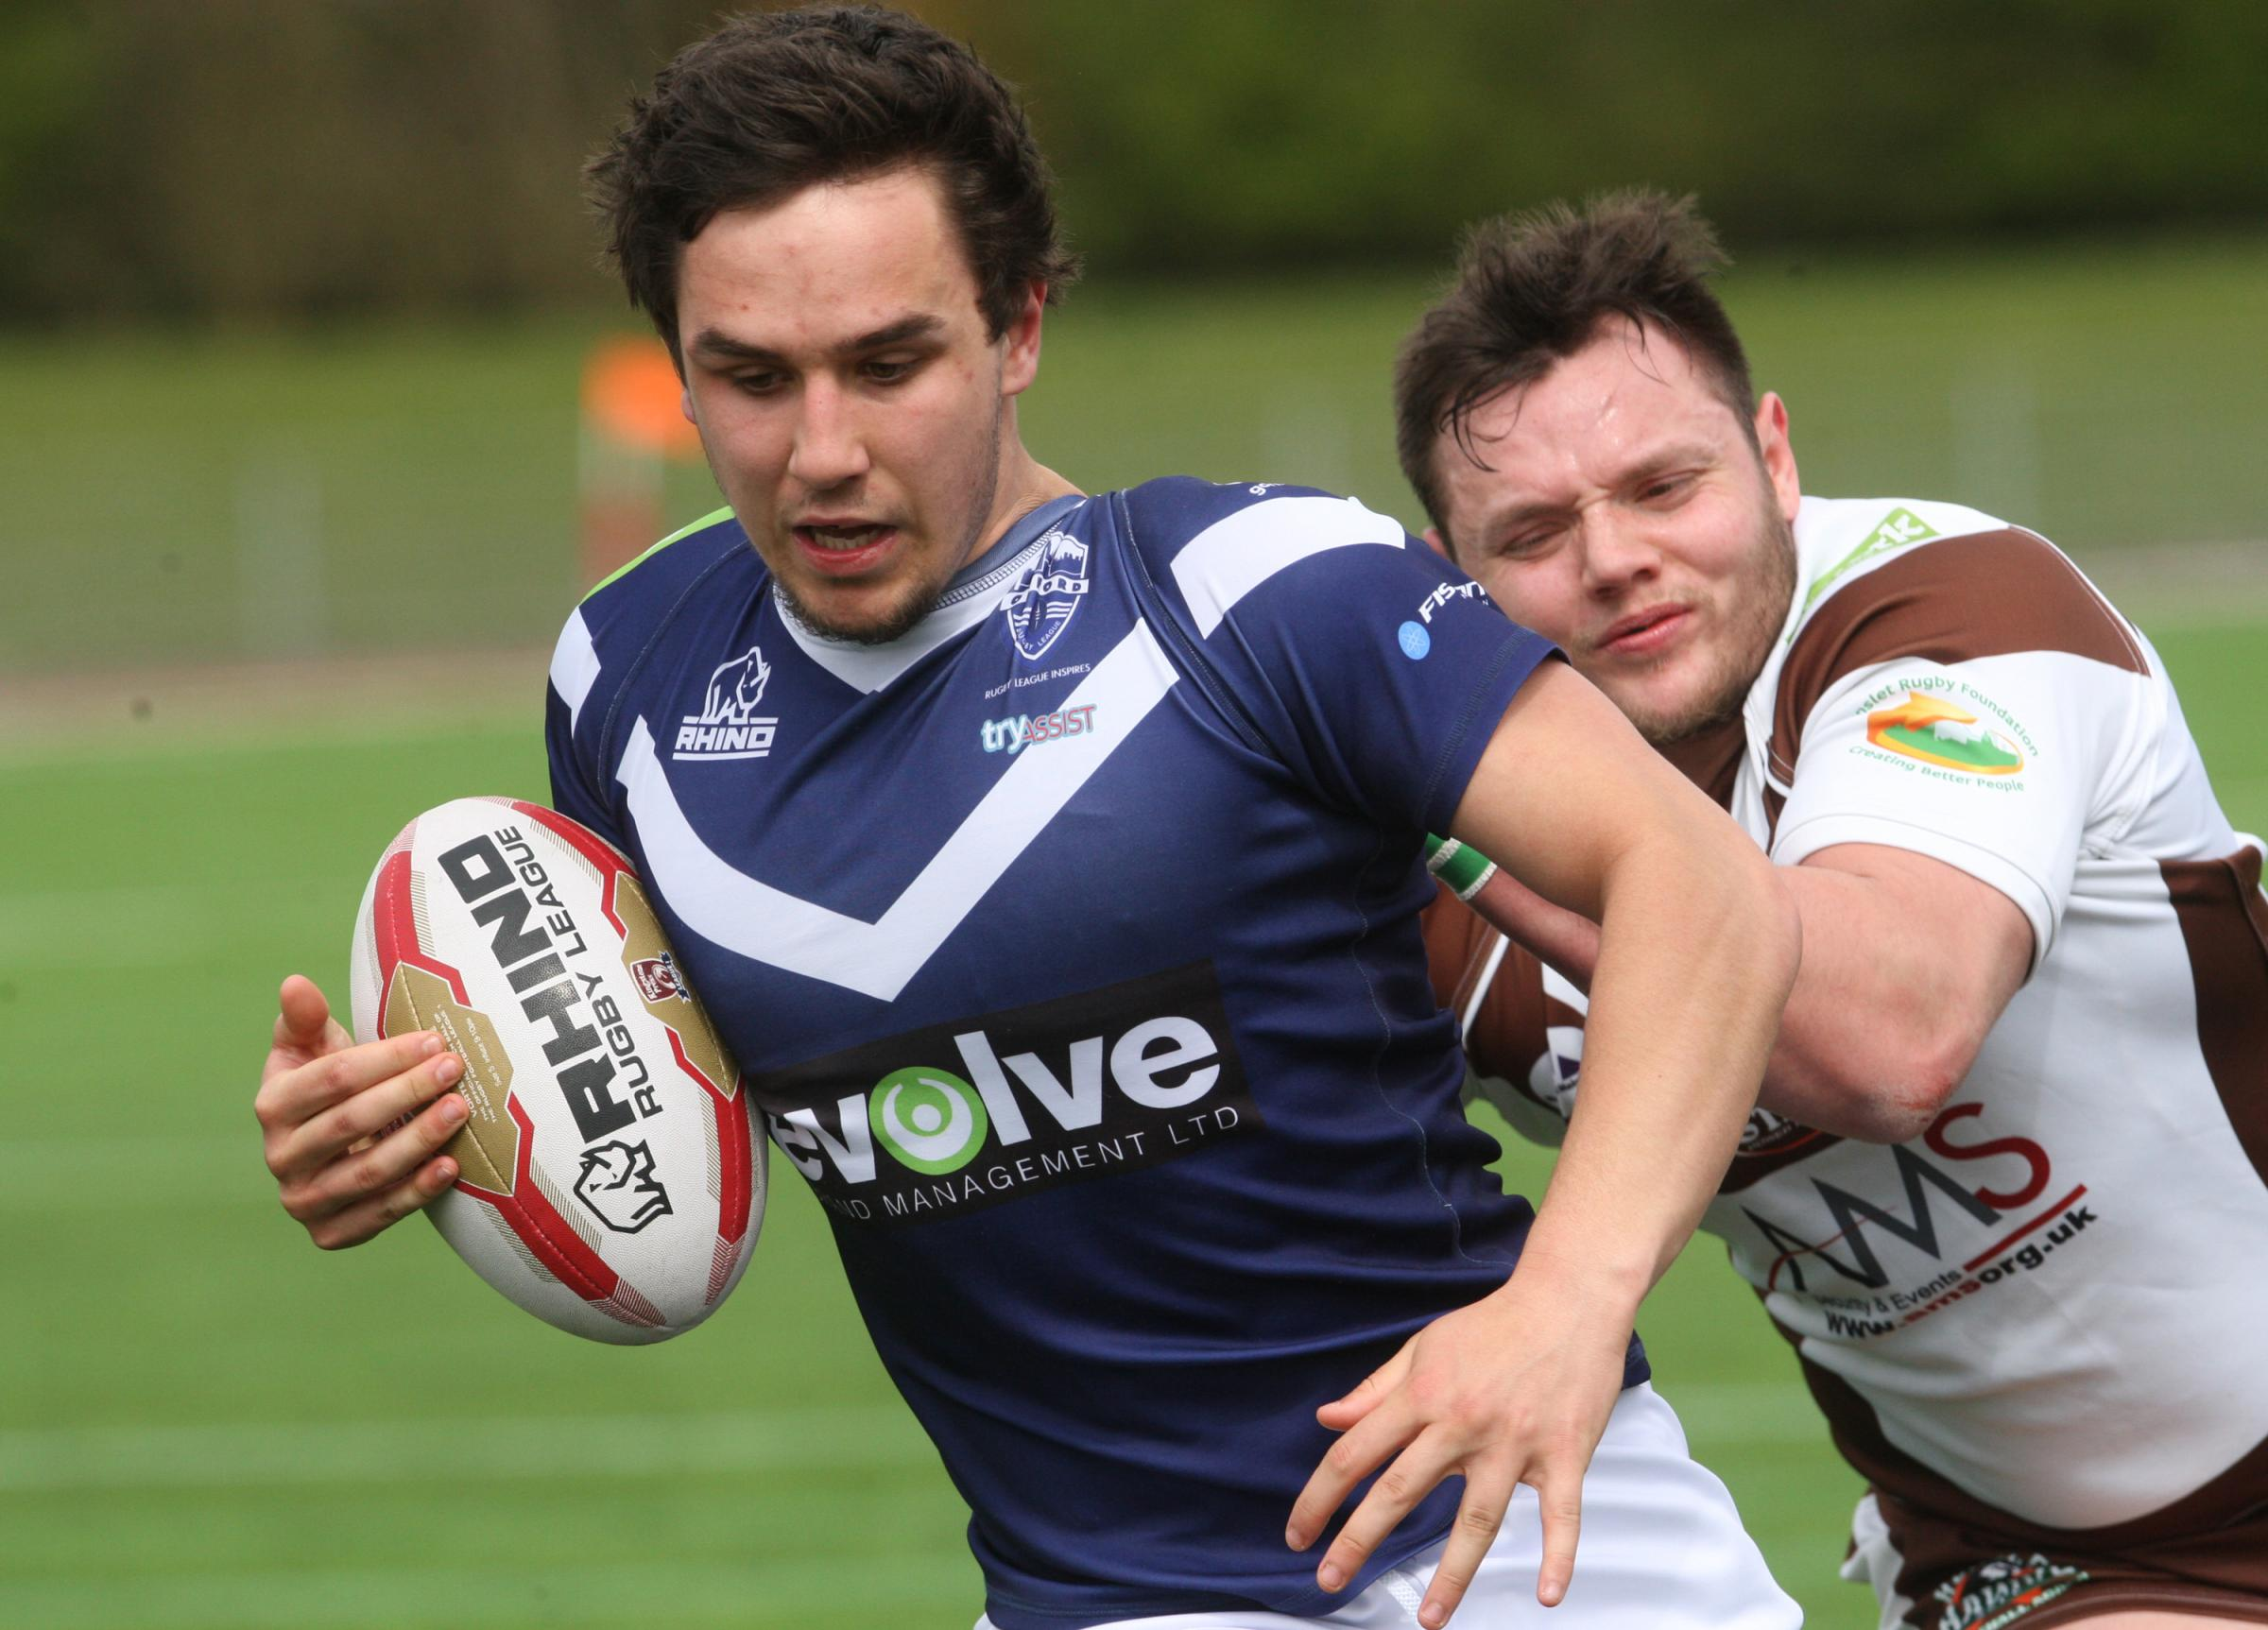 Tom Holmes scored a try in Oxford RL's 54-8 defeat at Toulouse Olympique